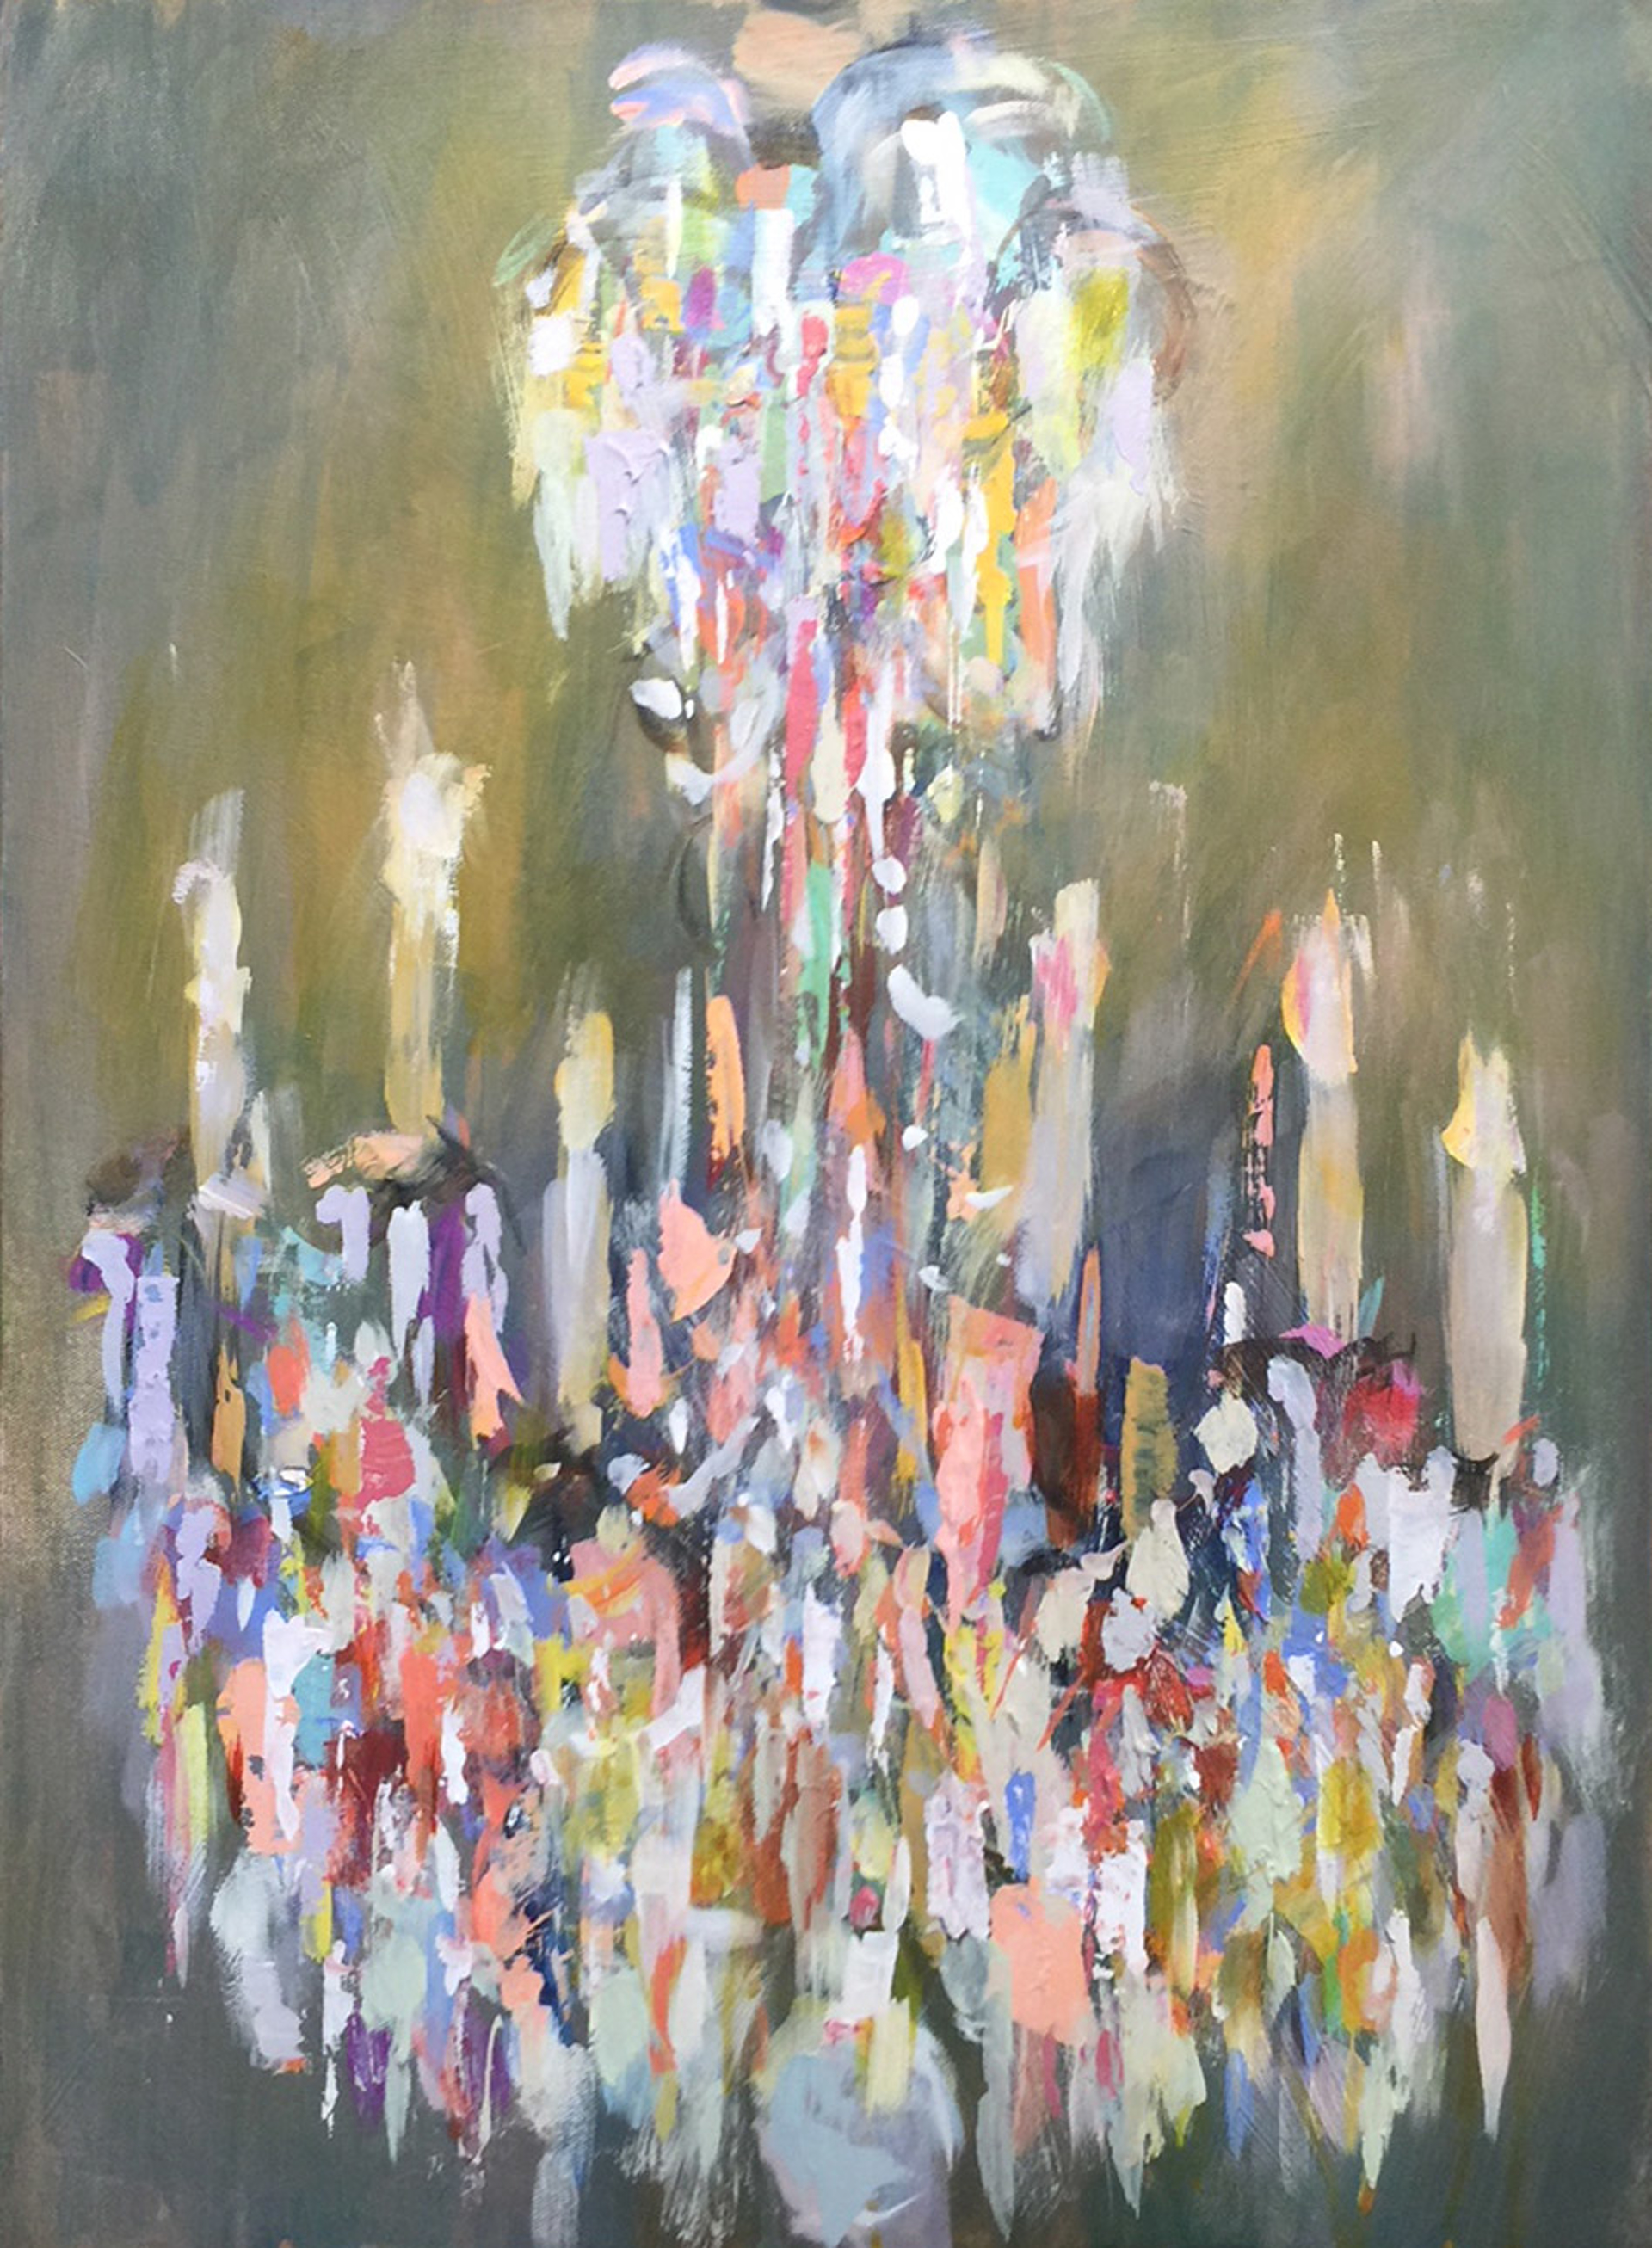 Spring Chandelier by Amy Dixon